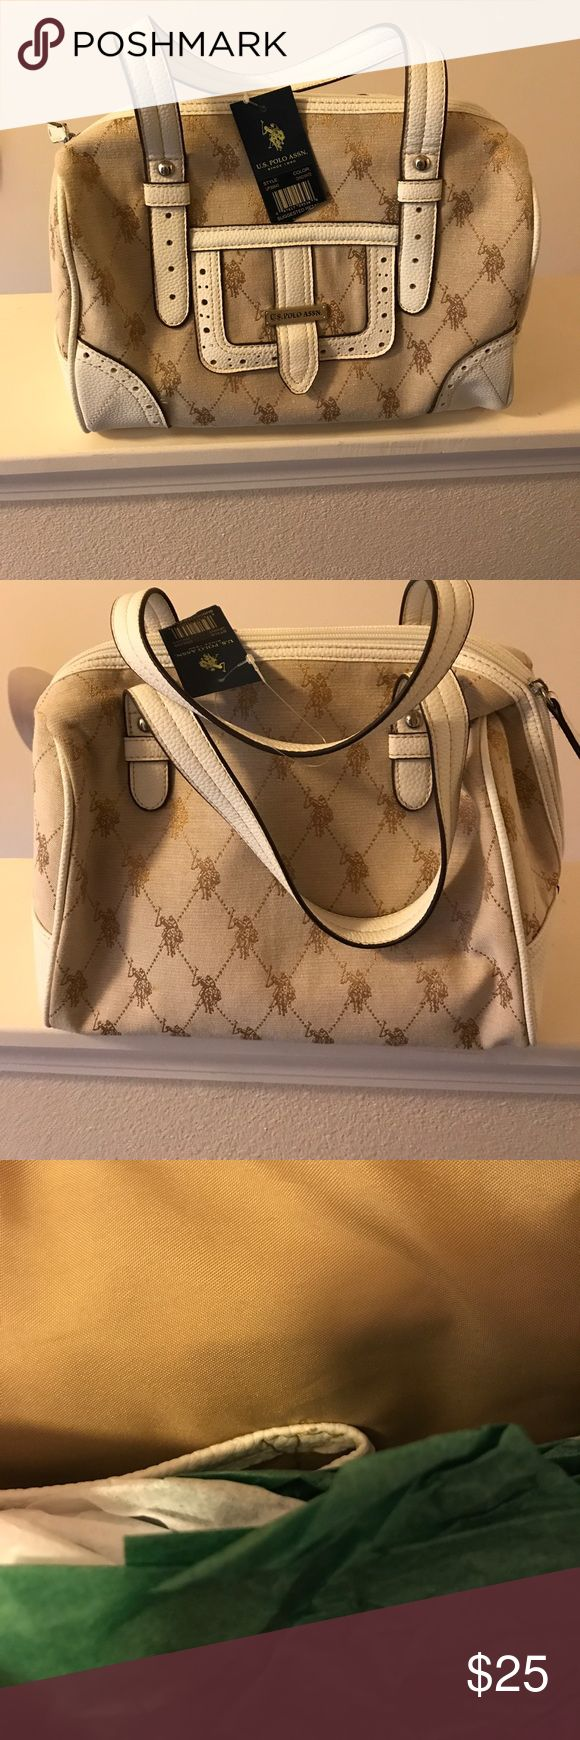 US Polo Assn handbag Aloha! This handbag is brand new & has the tags on it still.  I have not had the chance to use it.  It's kind of a beige color with off white. U.S. Polo Assn. Bags